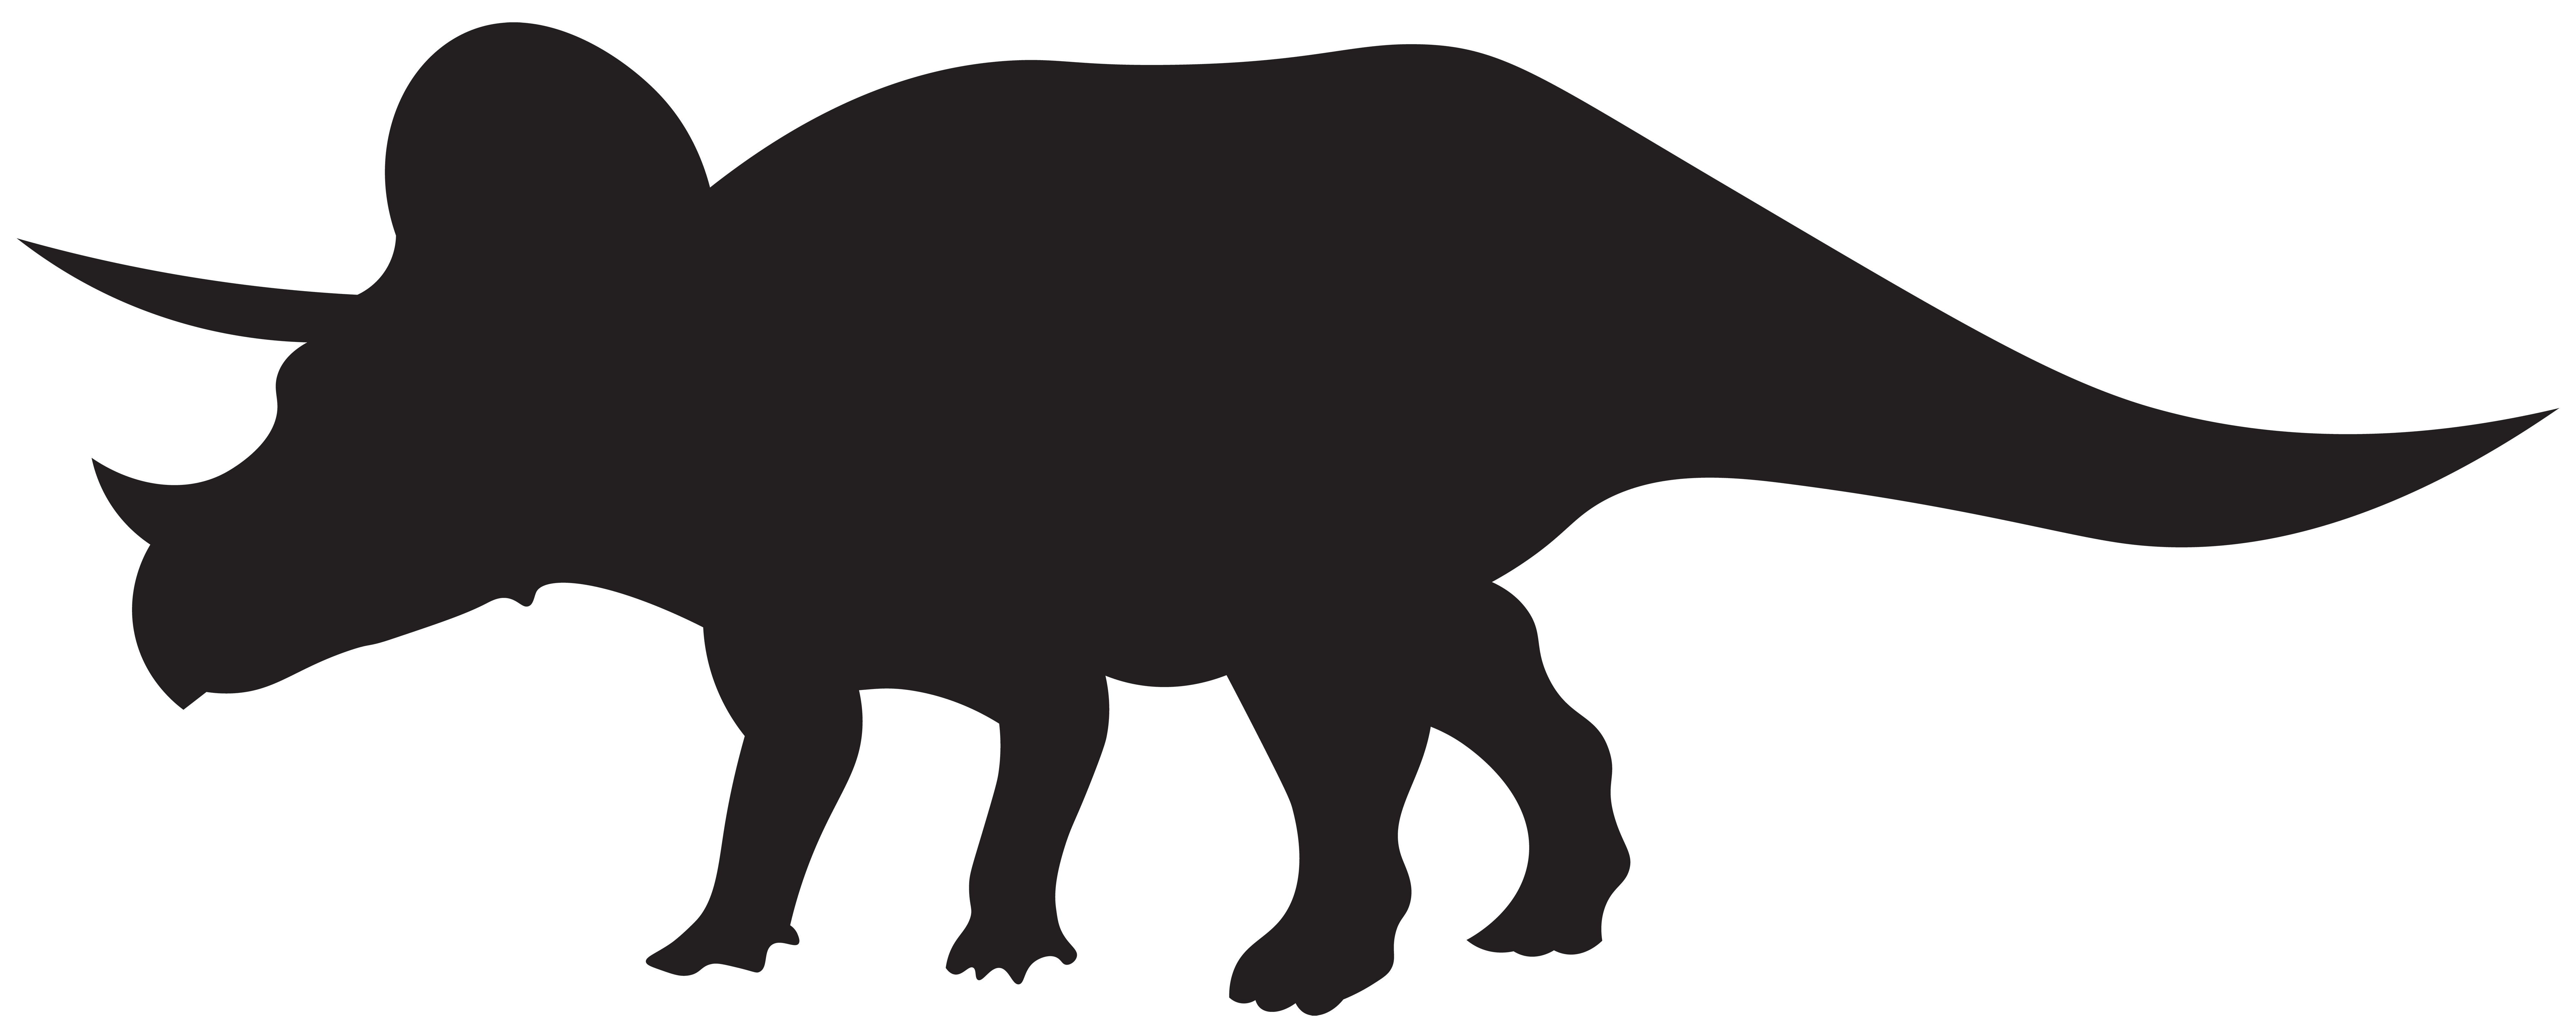 Dinosaurs svg easter. Triceratops silhouette at getdrawings